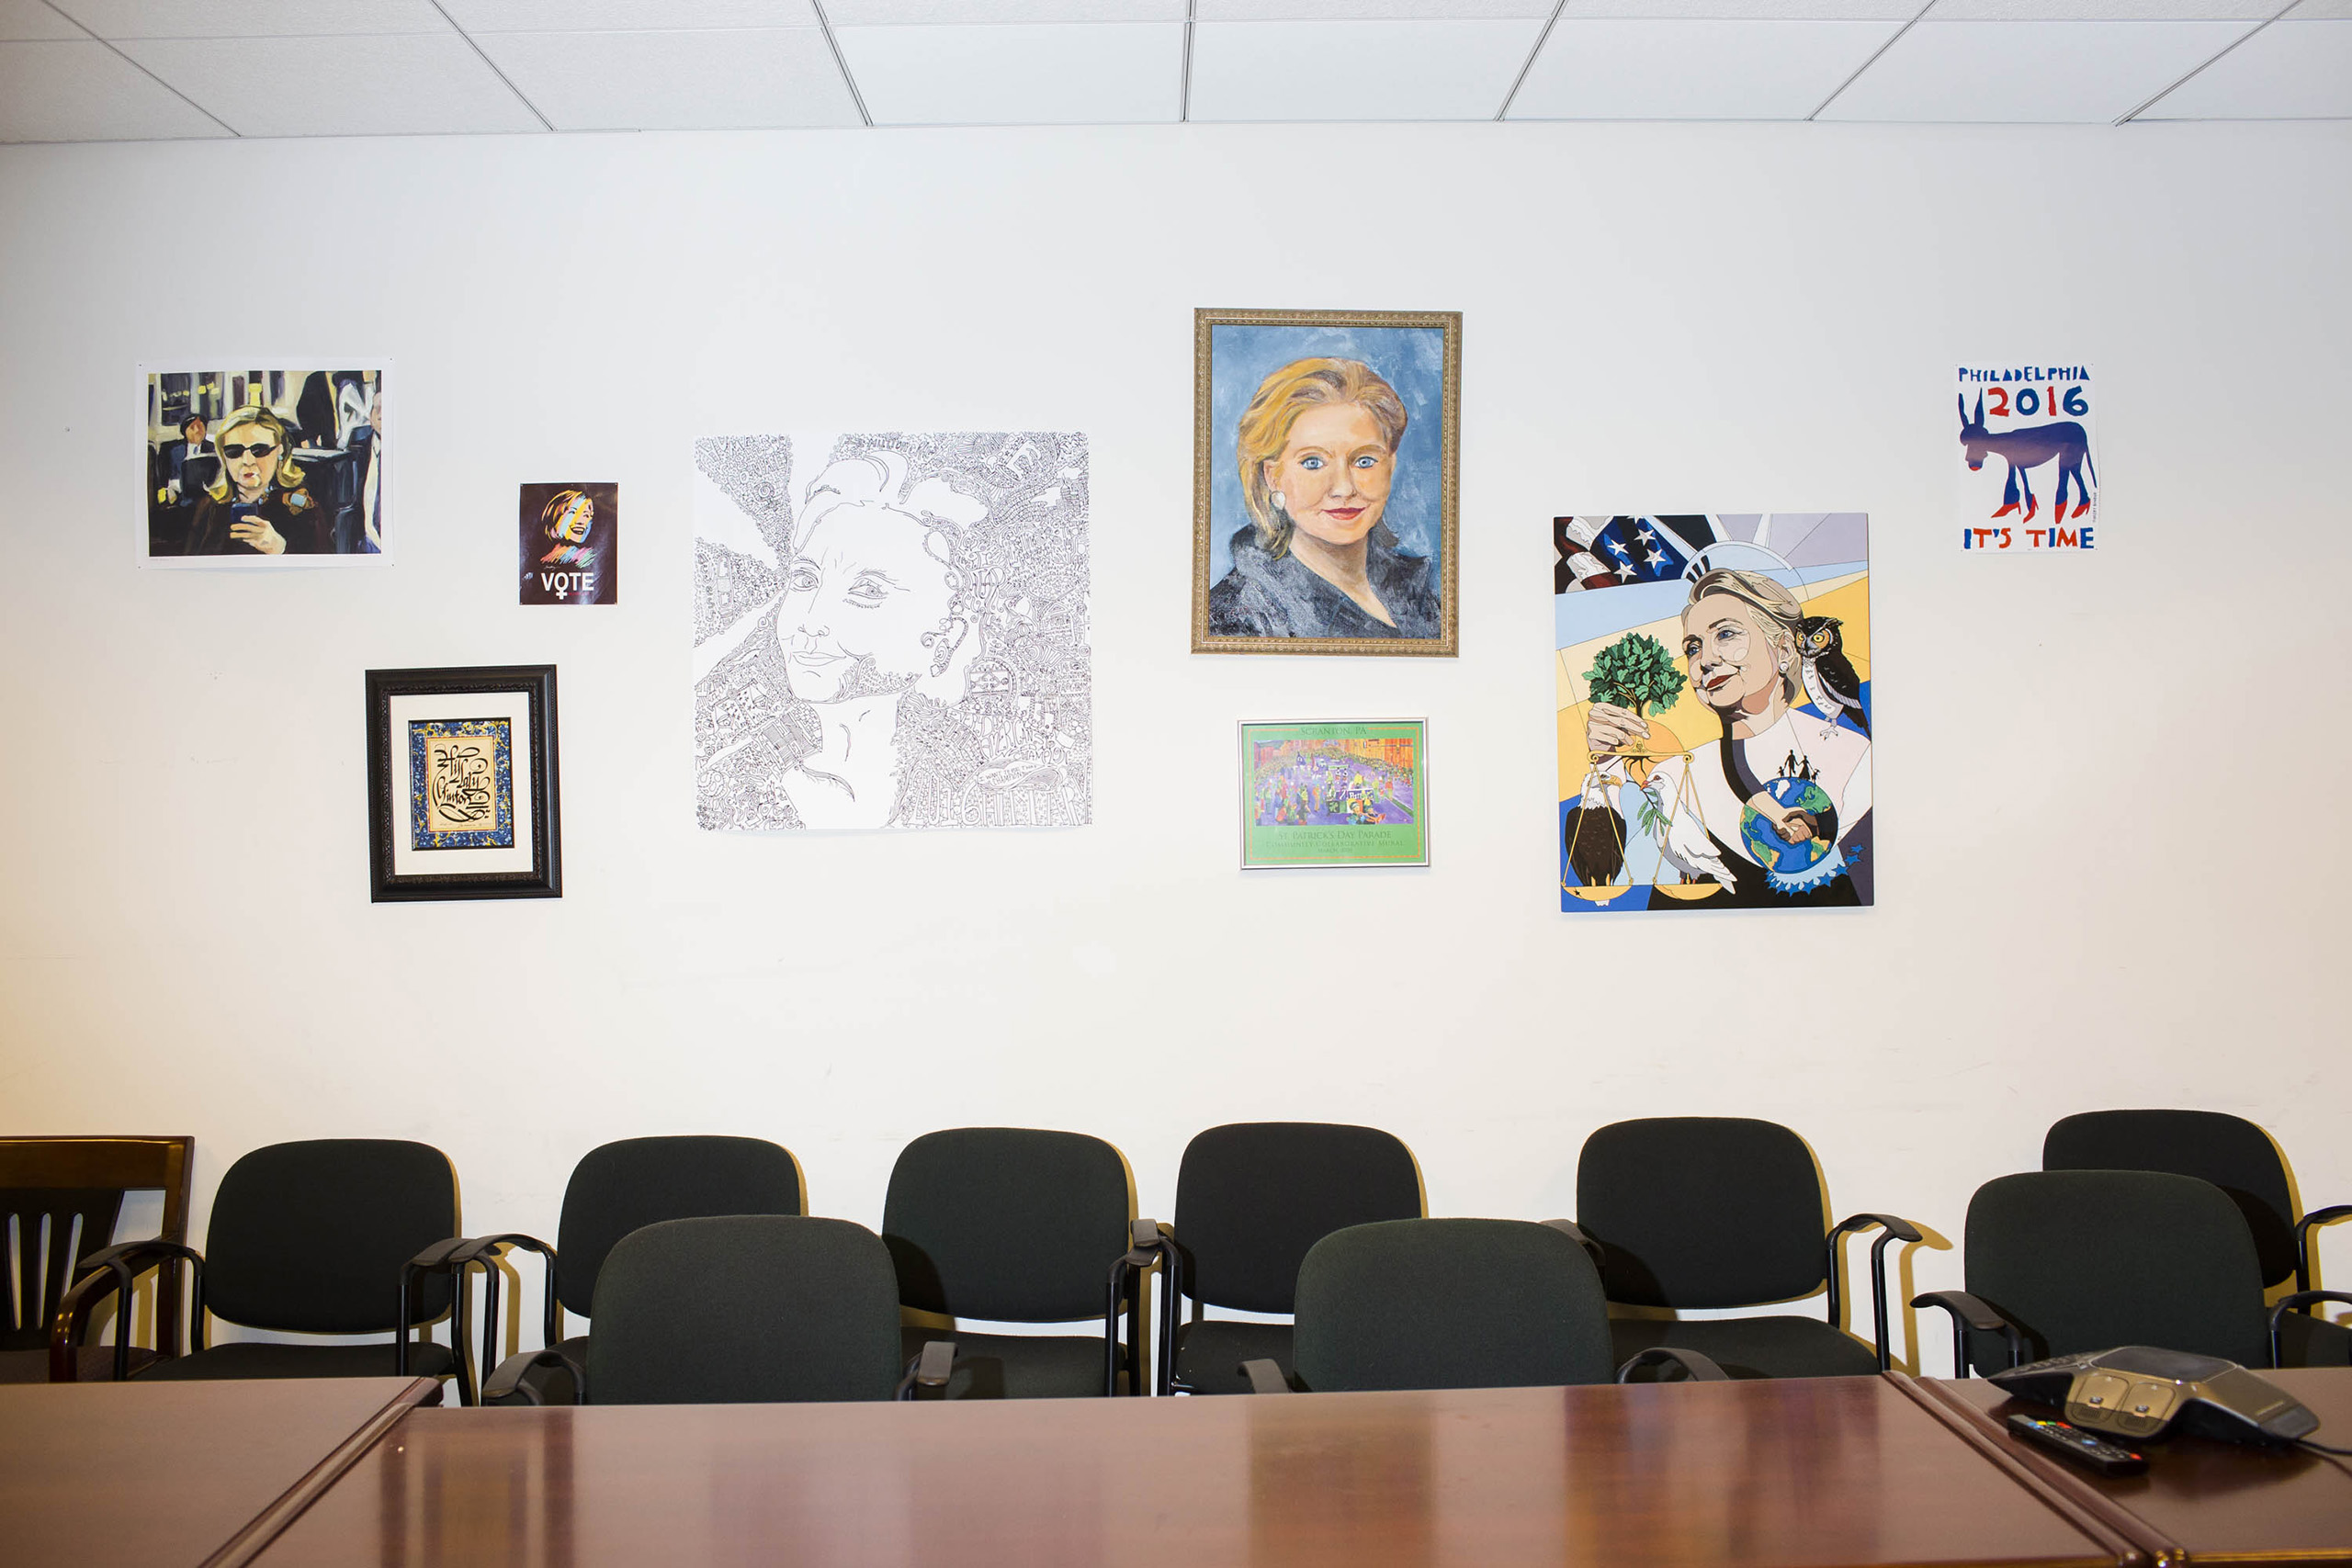 A conference room inside the campaign headquarters of Hillary Clinton on May 24, 2016, in Brooklyn, NY.